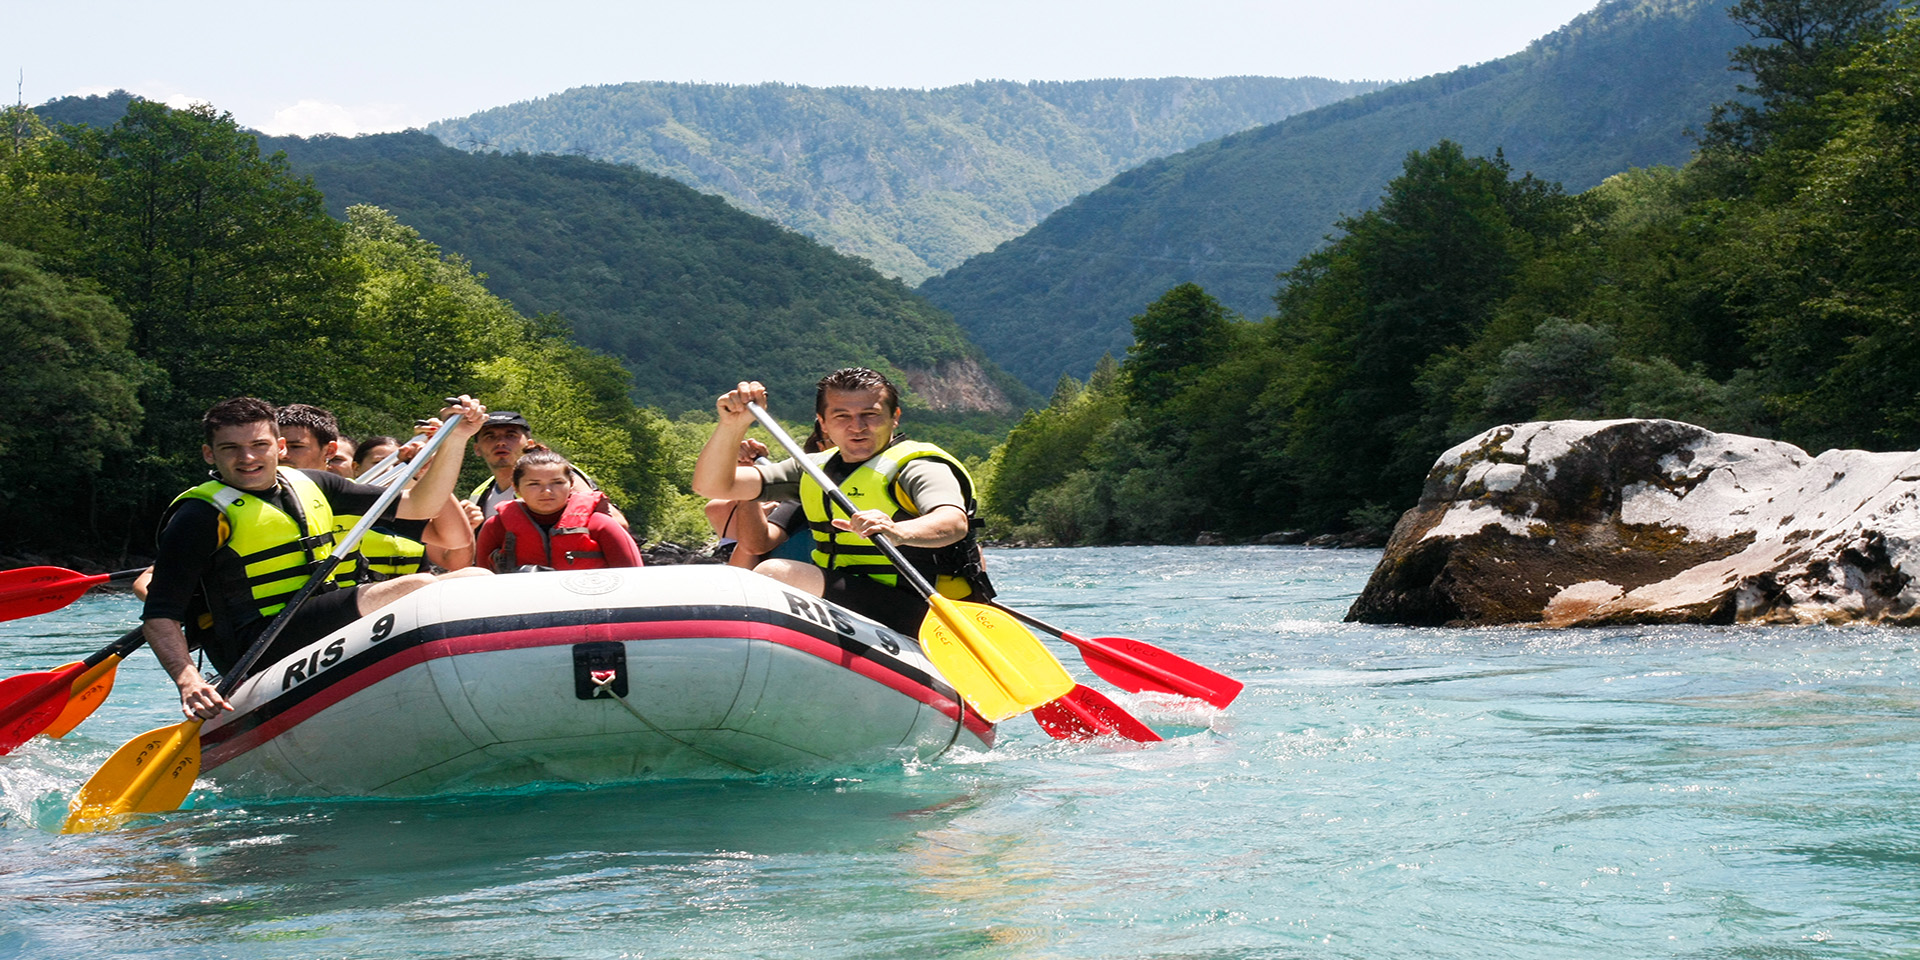 group of students whitewater rafting